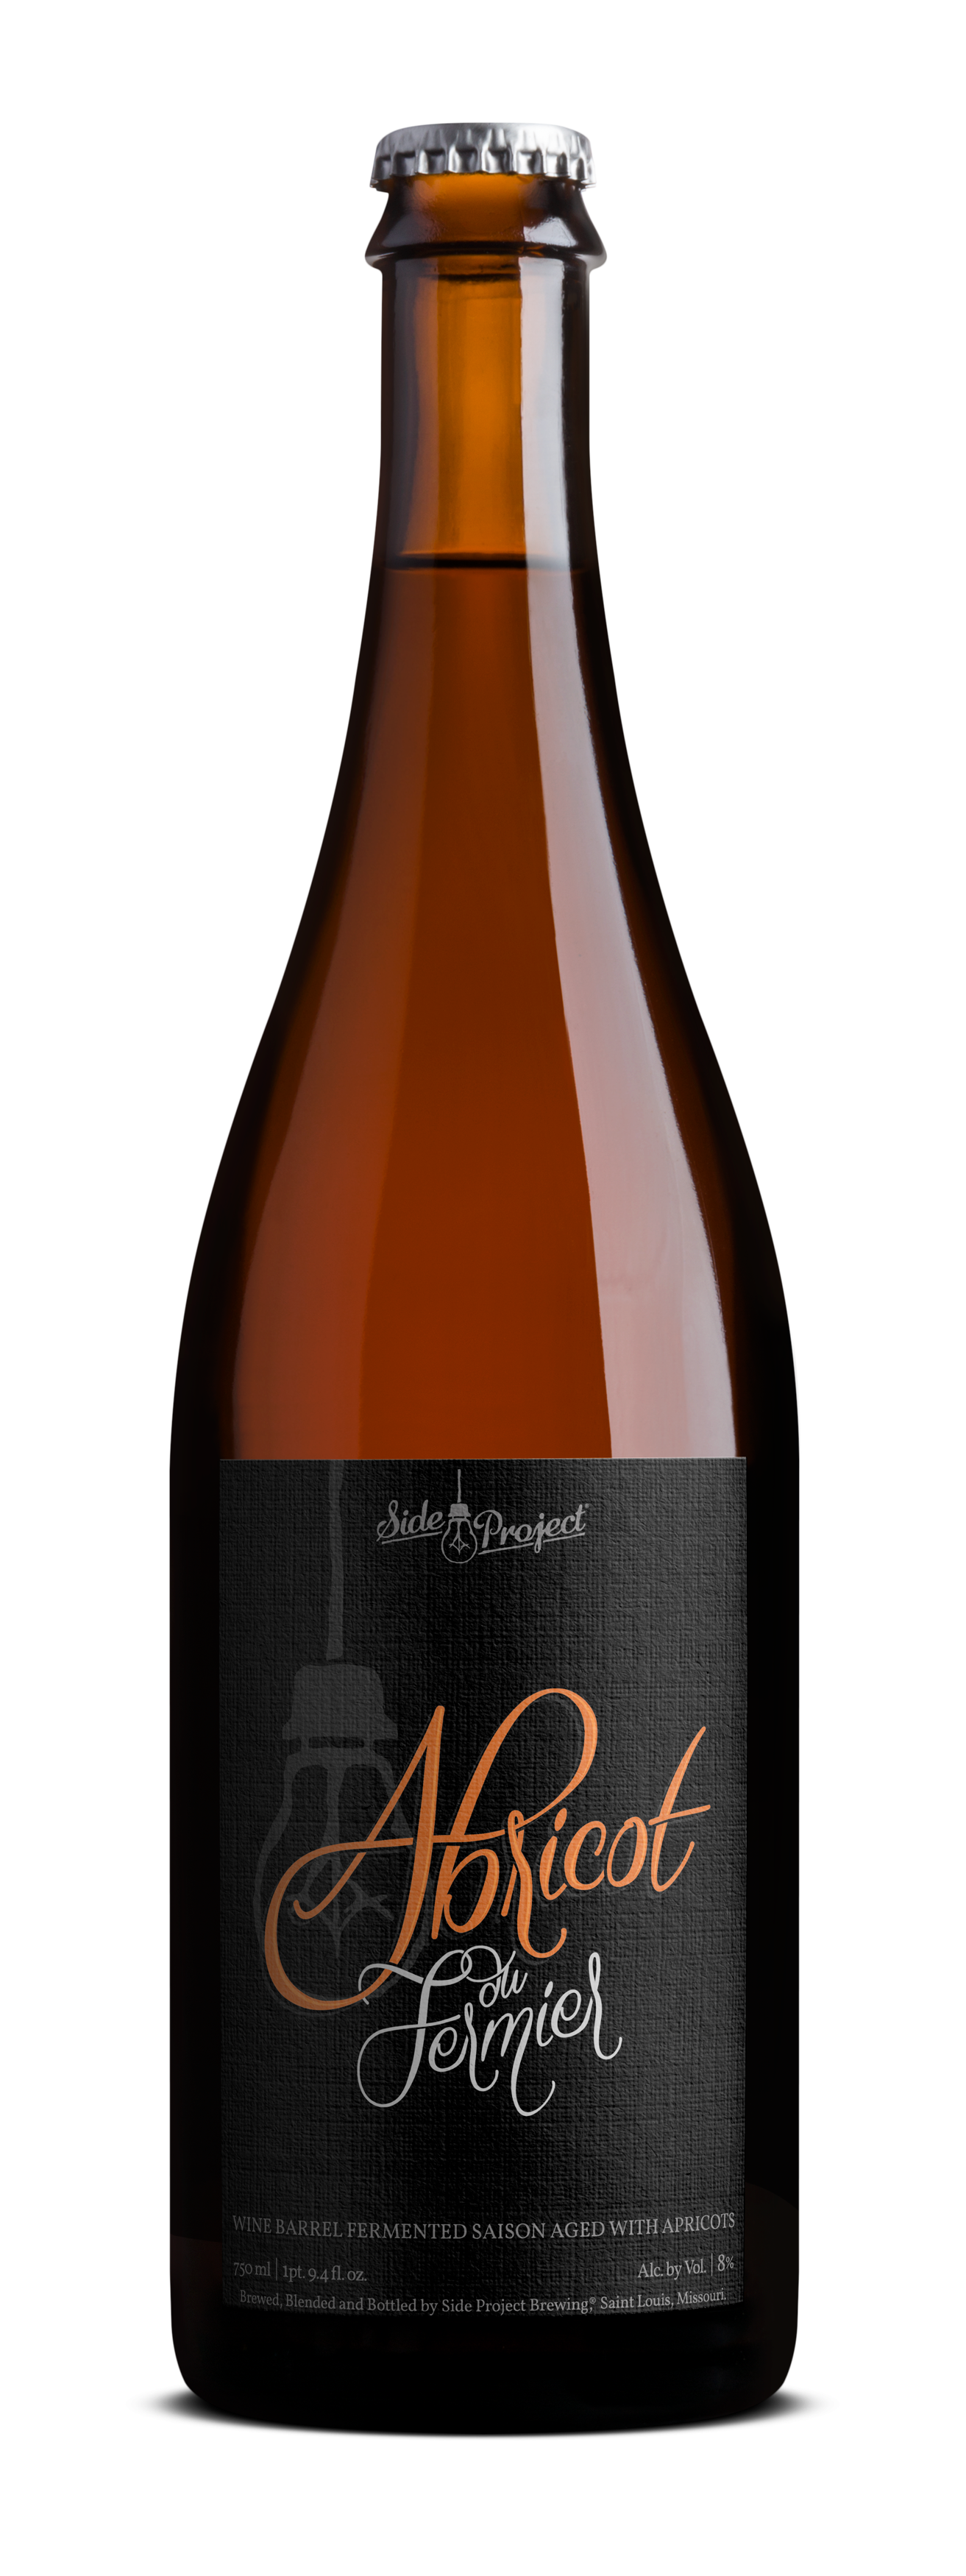 SideProject_AbricotDuFermier_750ml.png